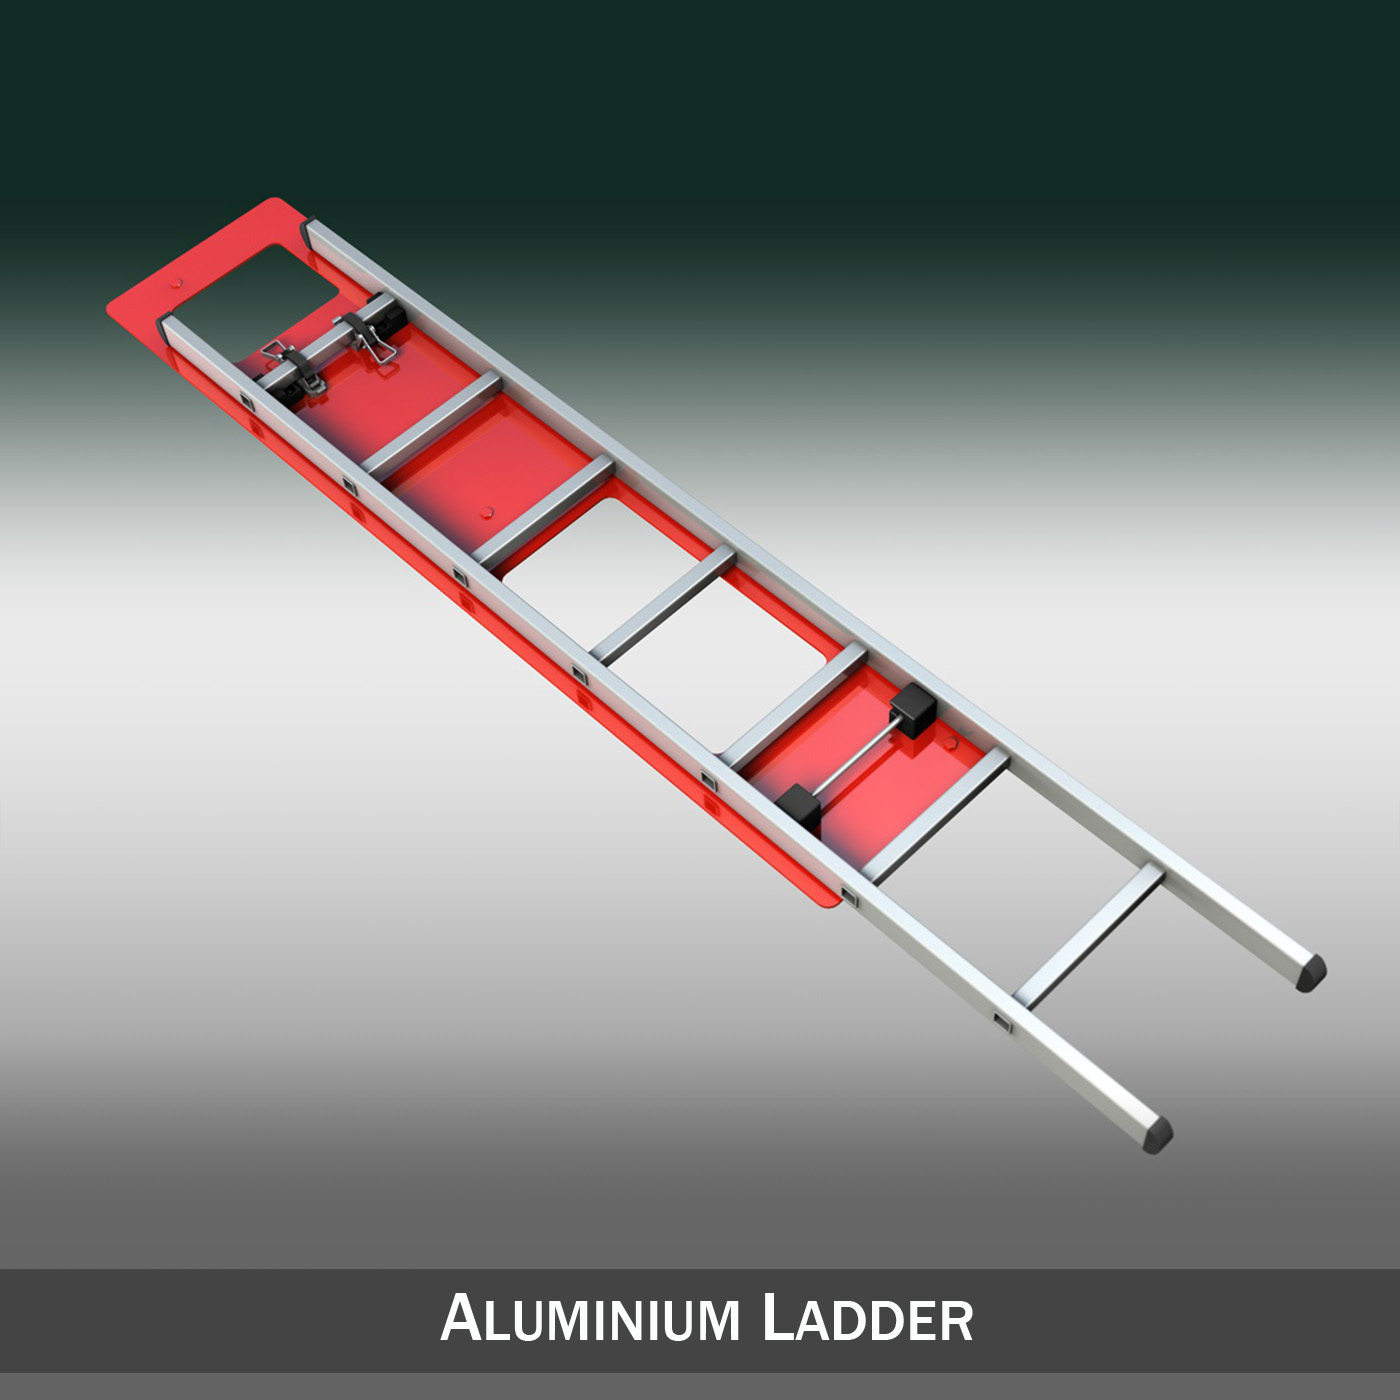 alu ladder with vehicle mounting 3d model 3ds fbx c4d lwo obj 188478